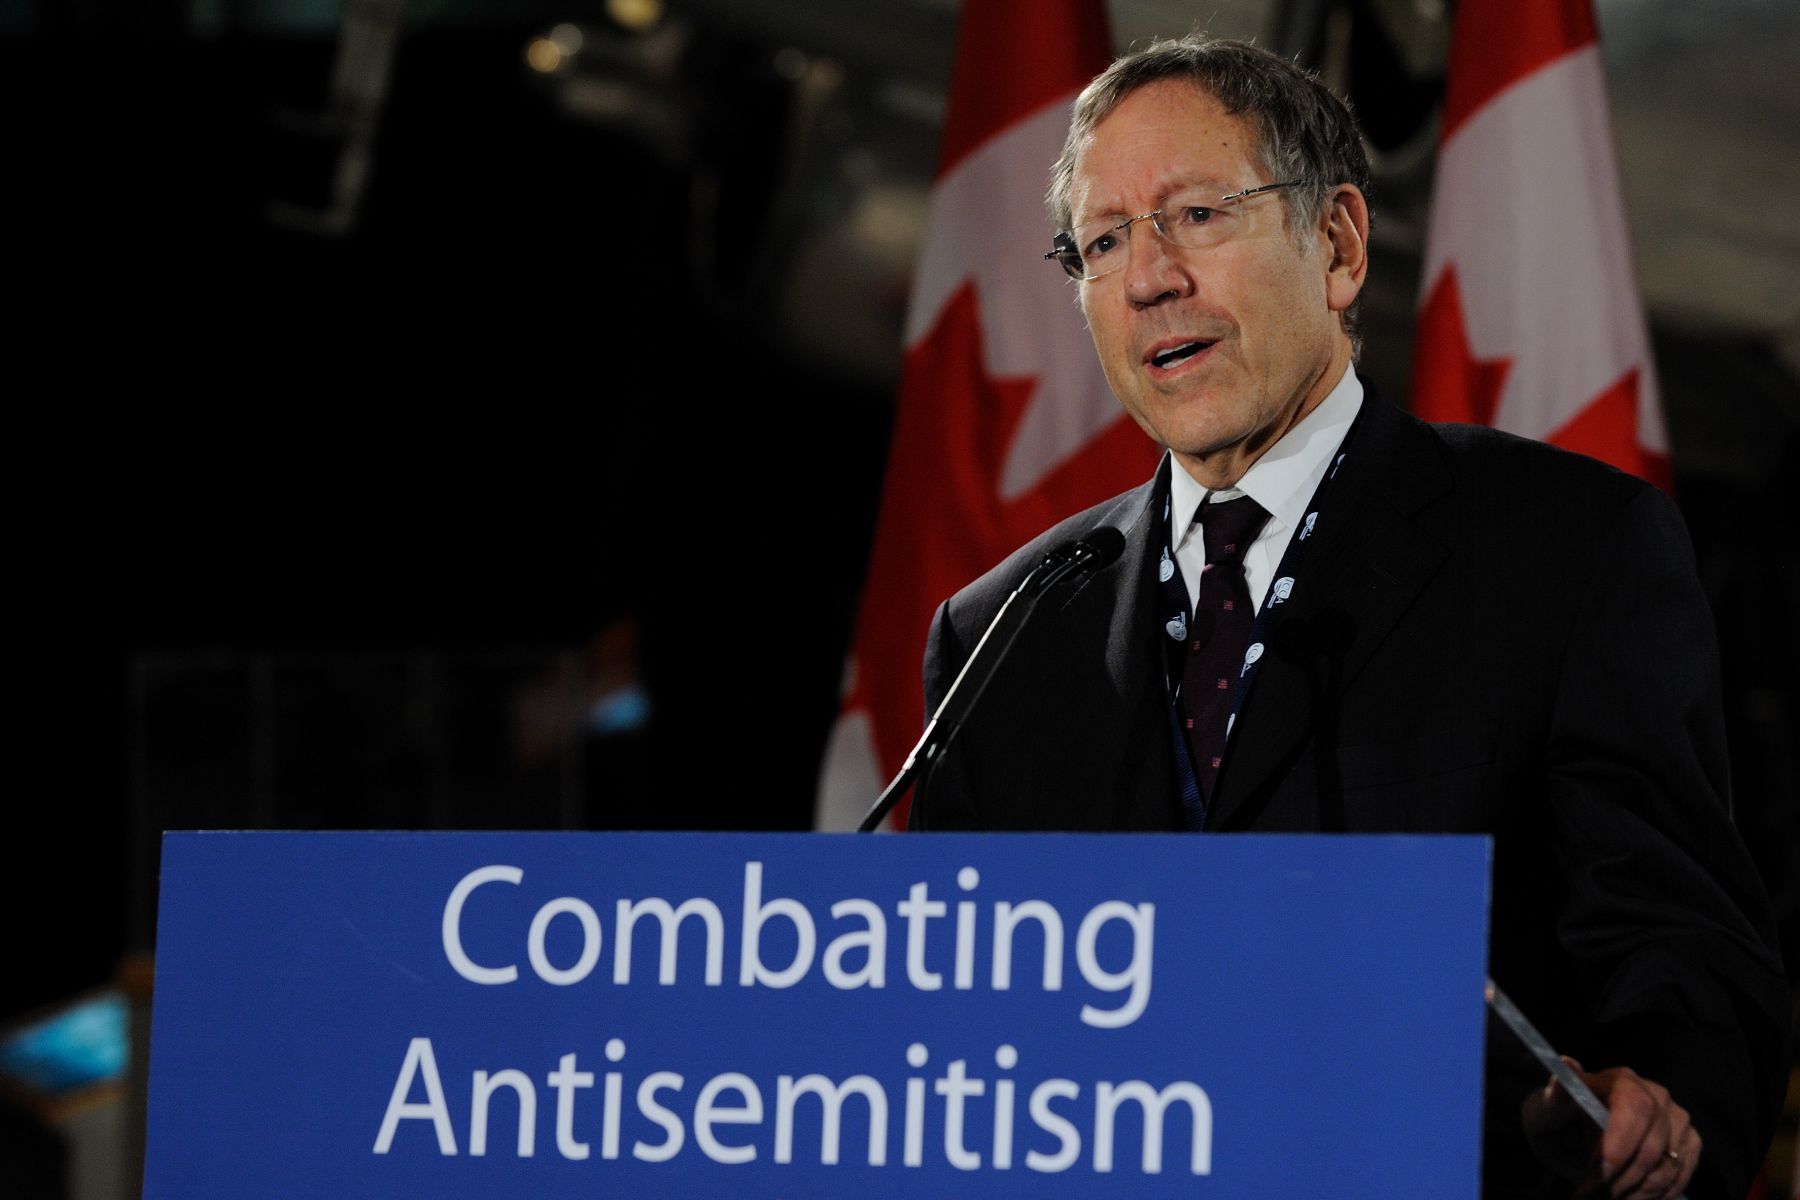 The Honourable Irwin COTLER, Member of Parliament for Mount Royal, was among the speakers.